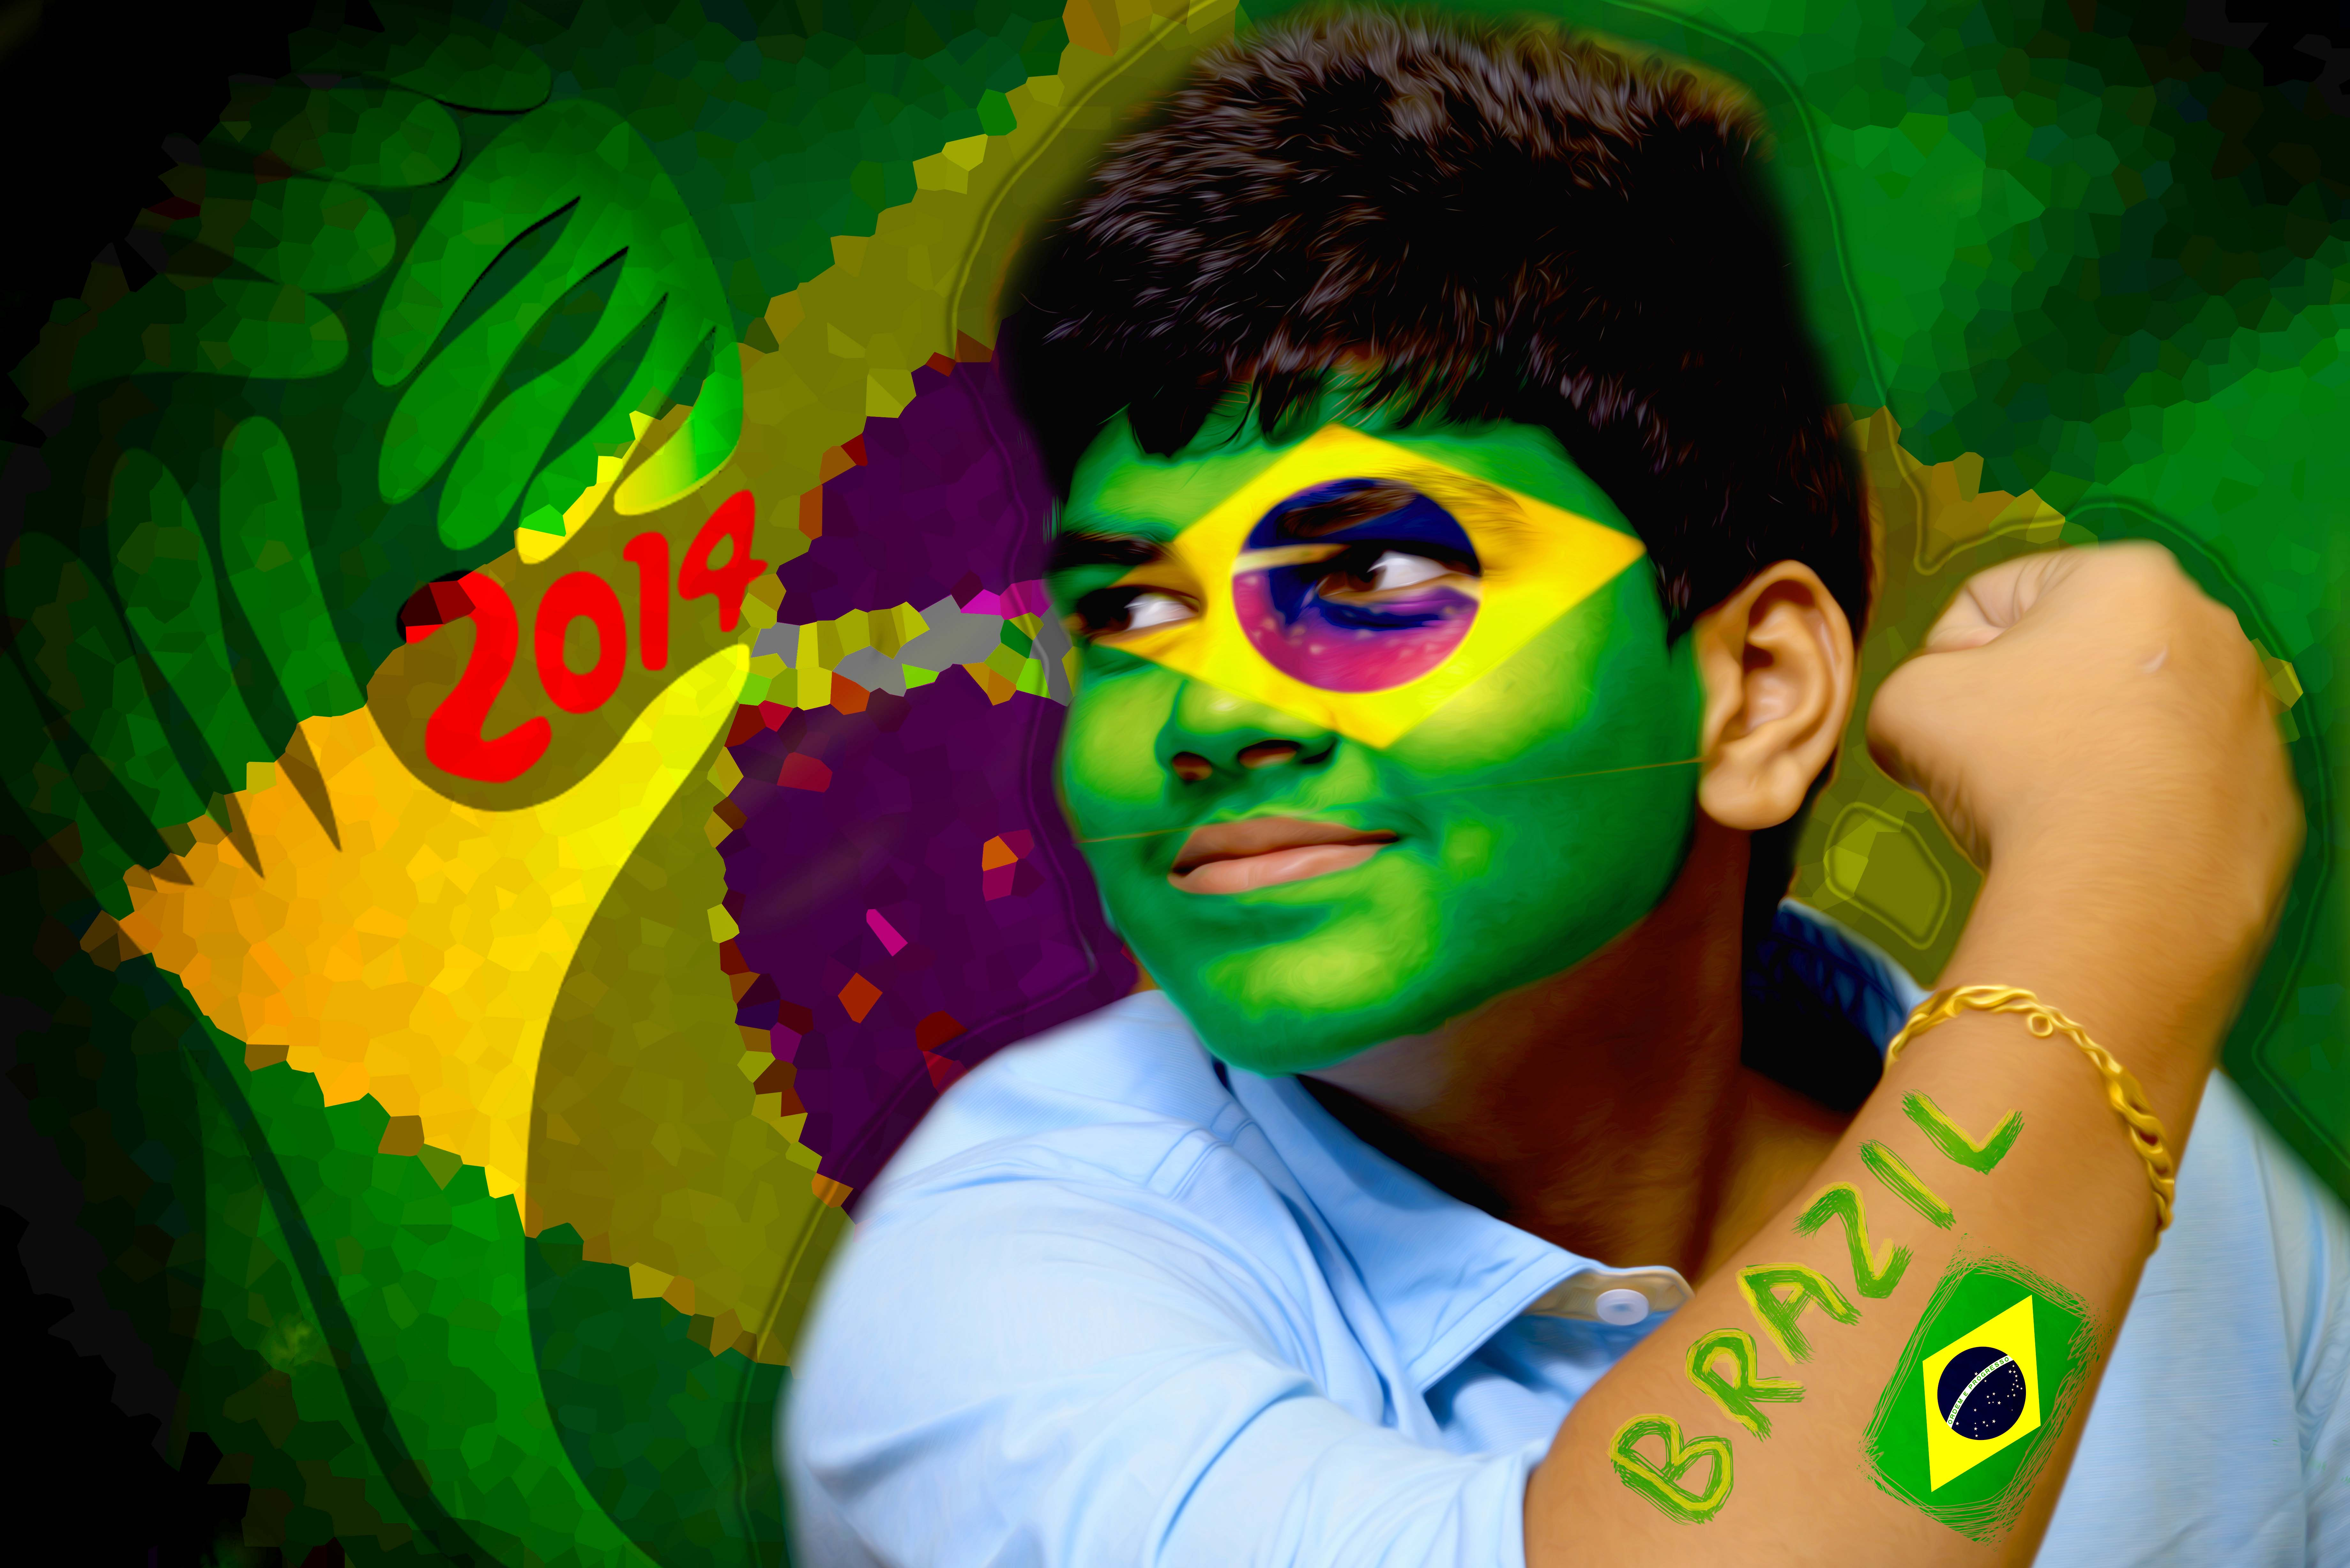 facepaint any FIFA worldcup country flag